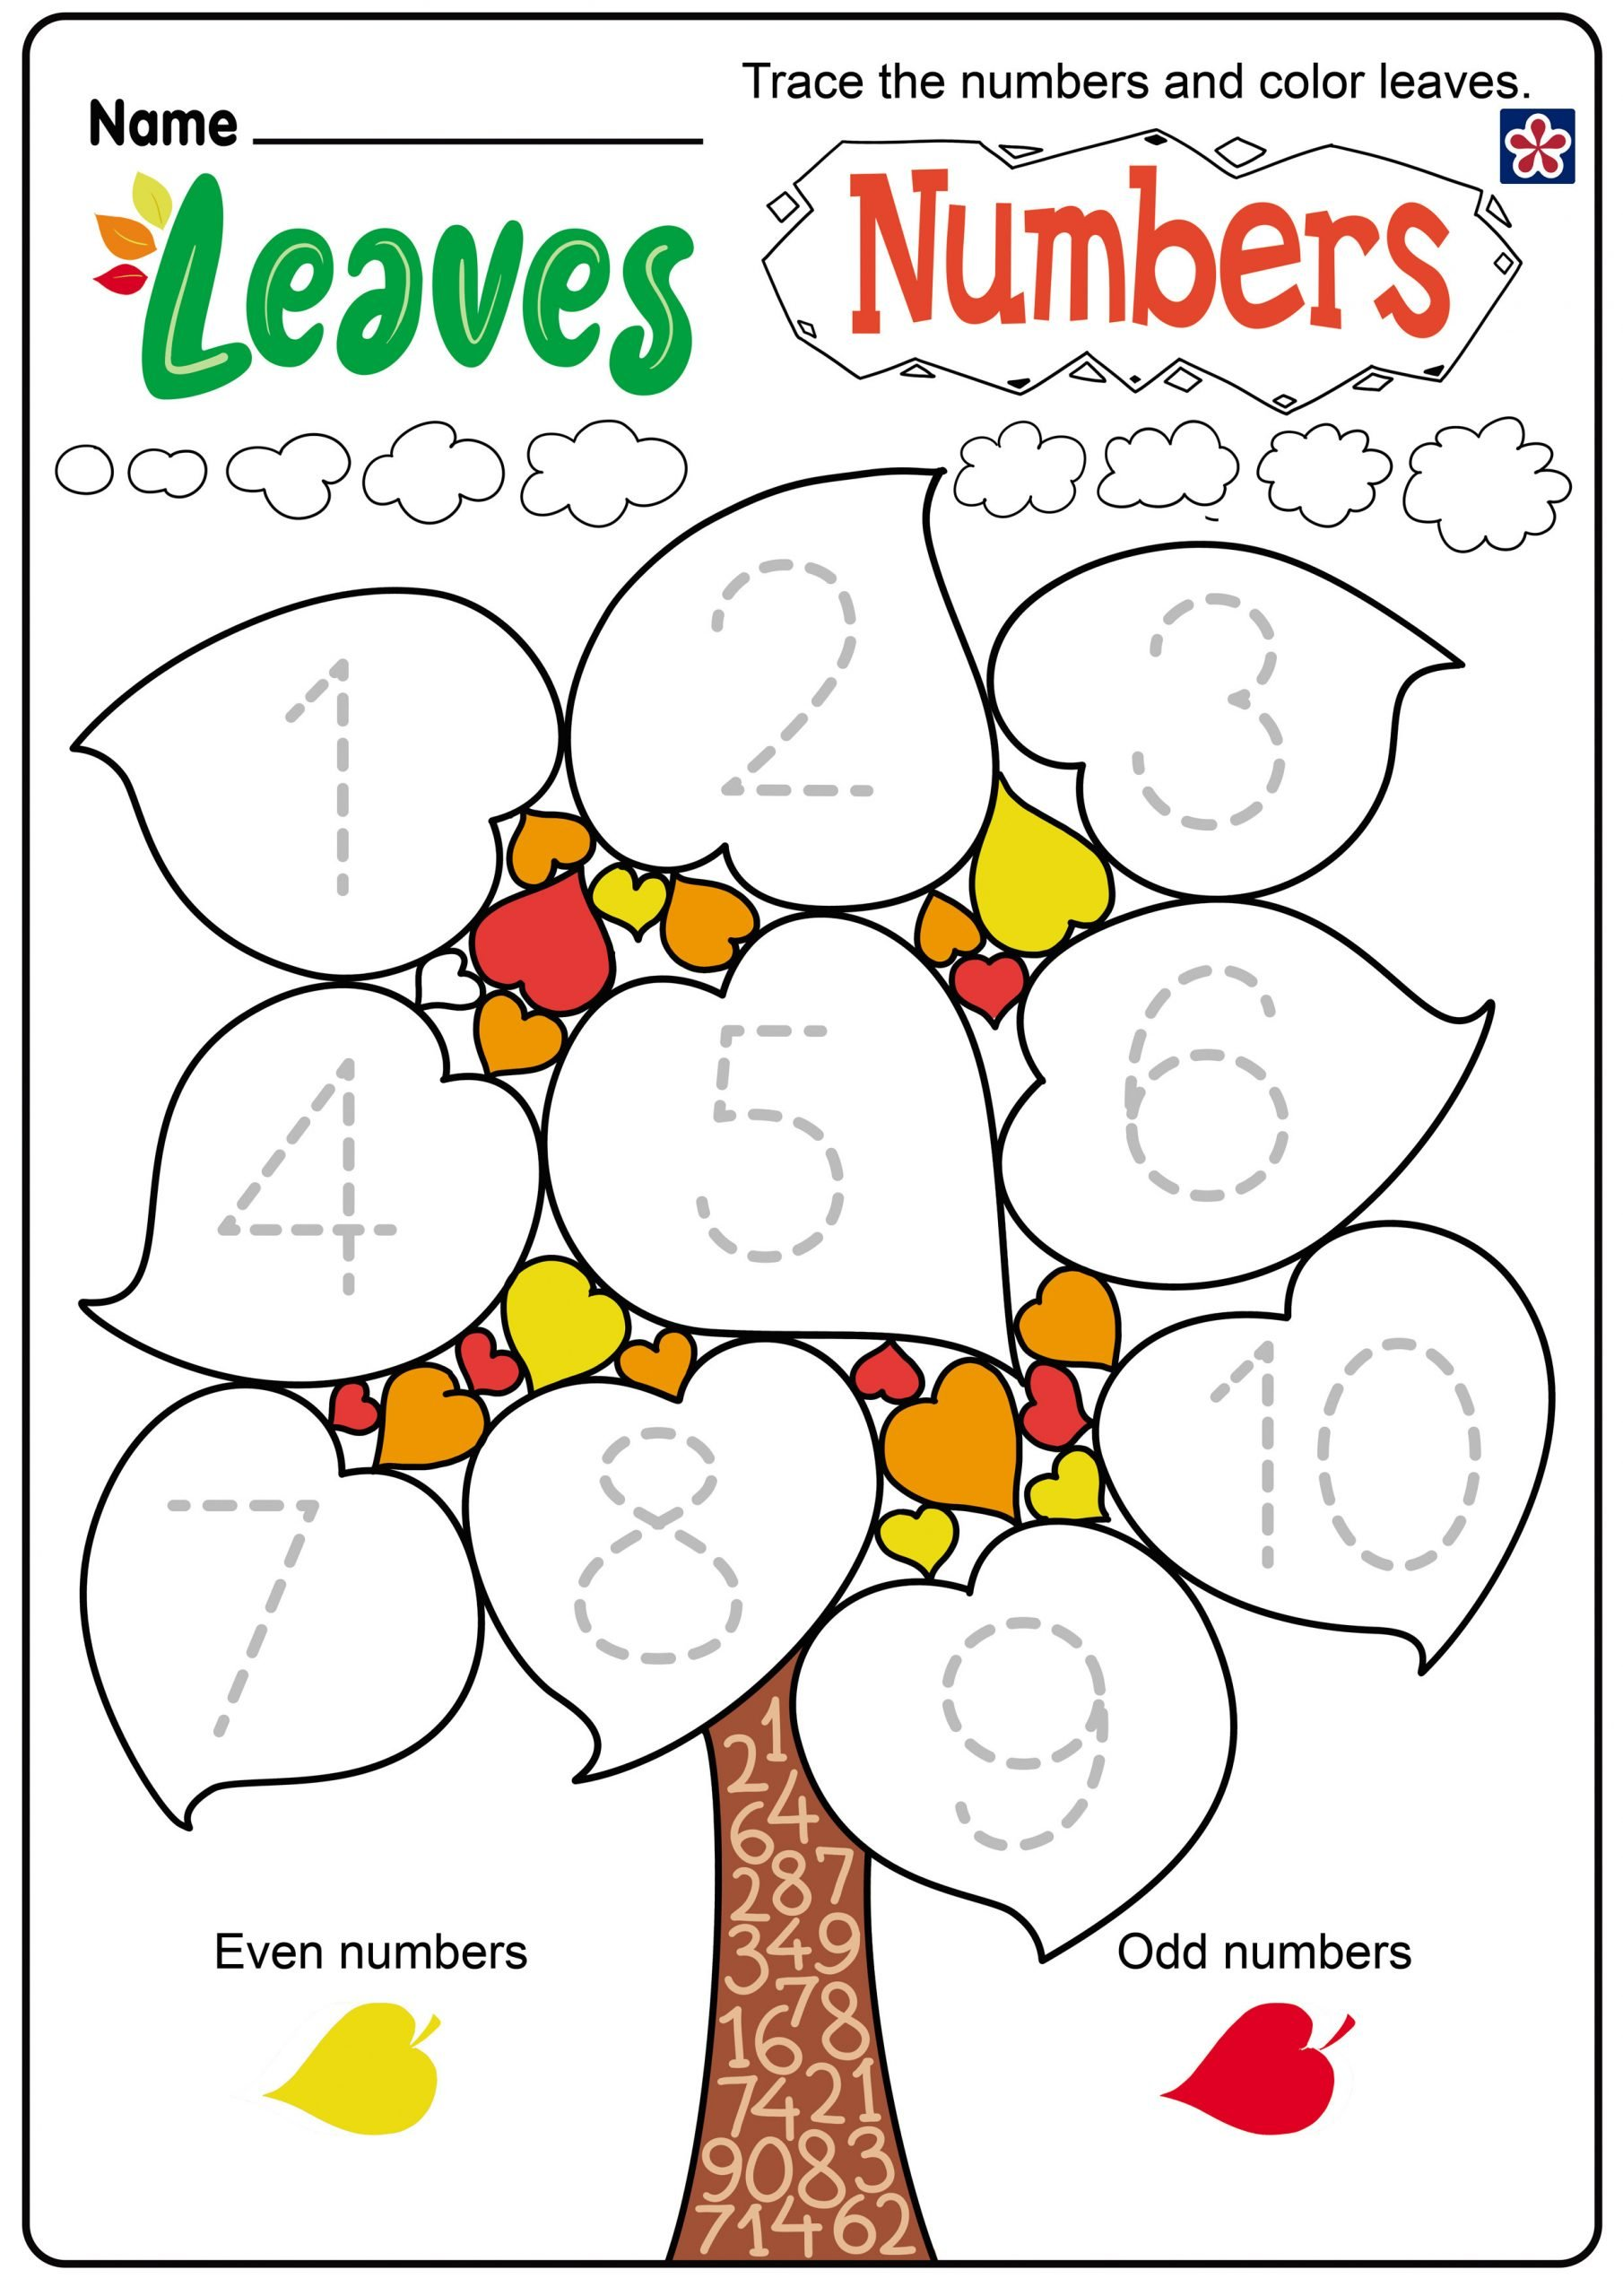 Fall Worksheets for Kindergarten Free Fall Leaves Worksheets for Preschool and Kindergarten